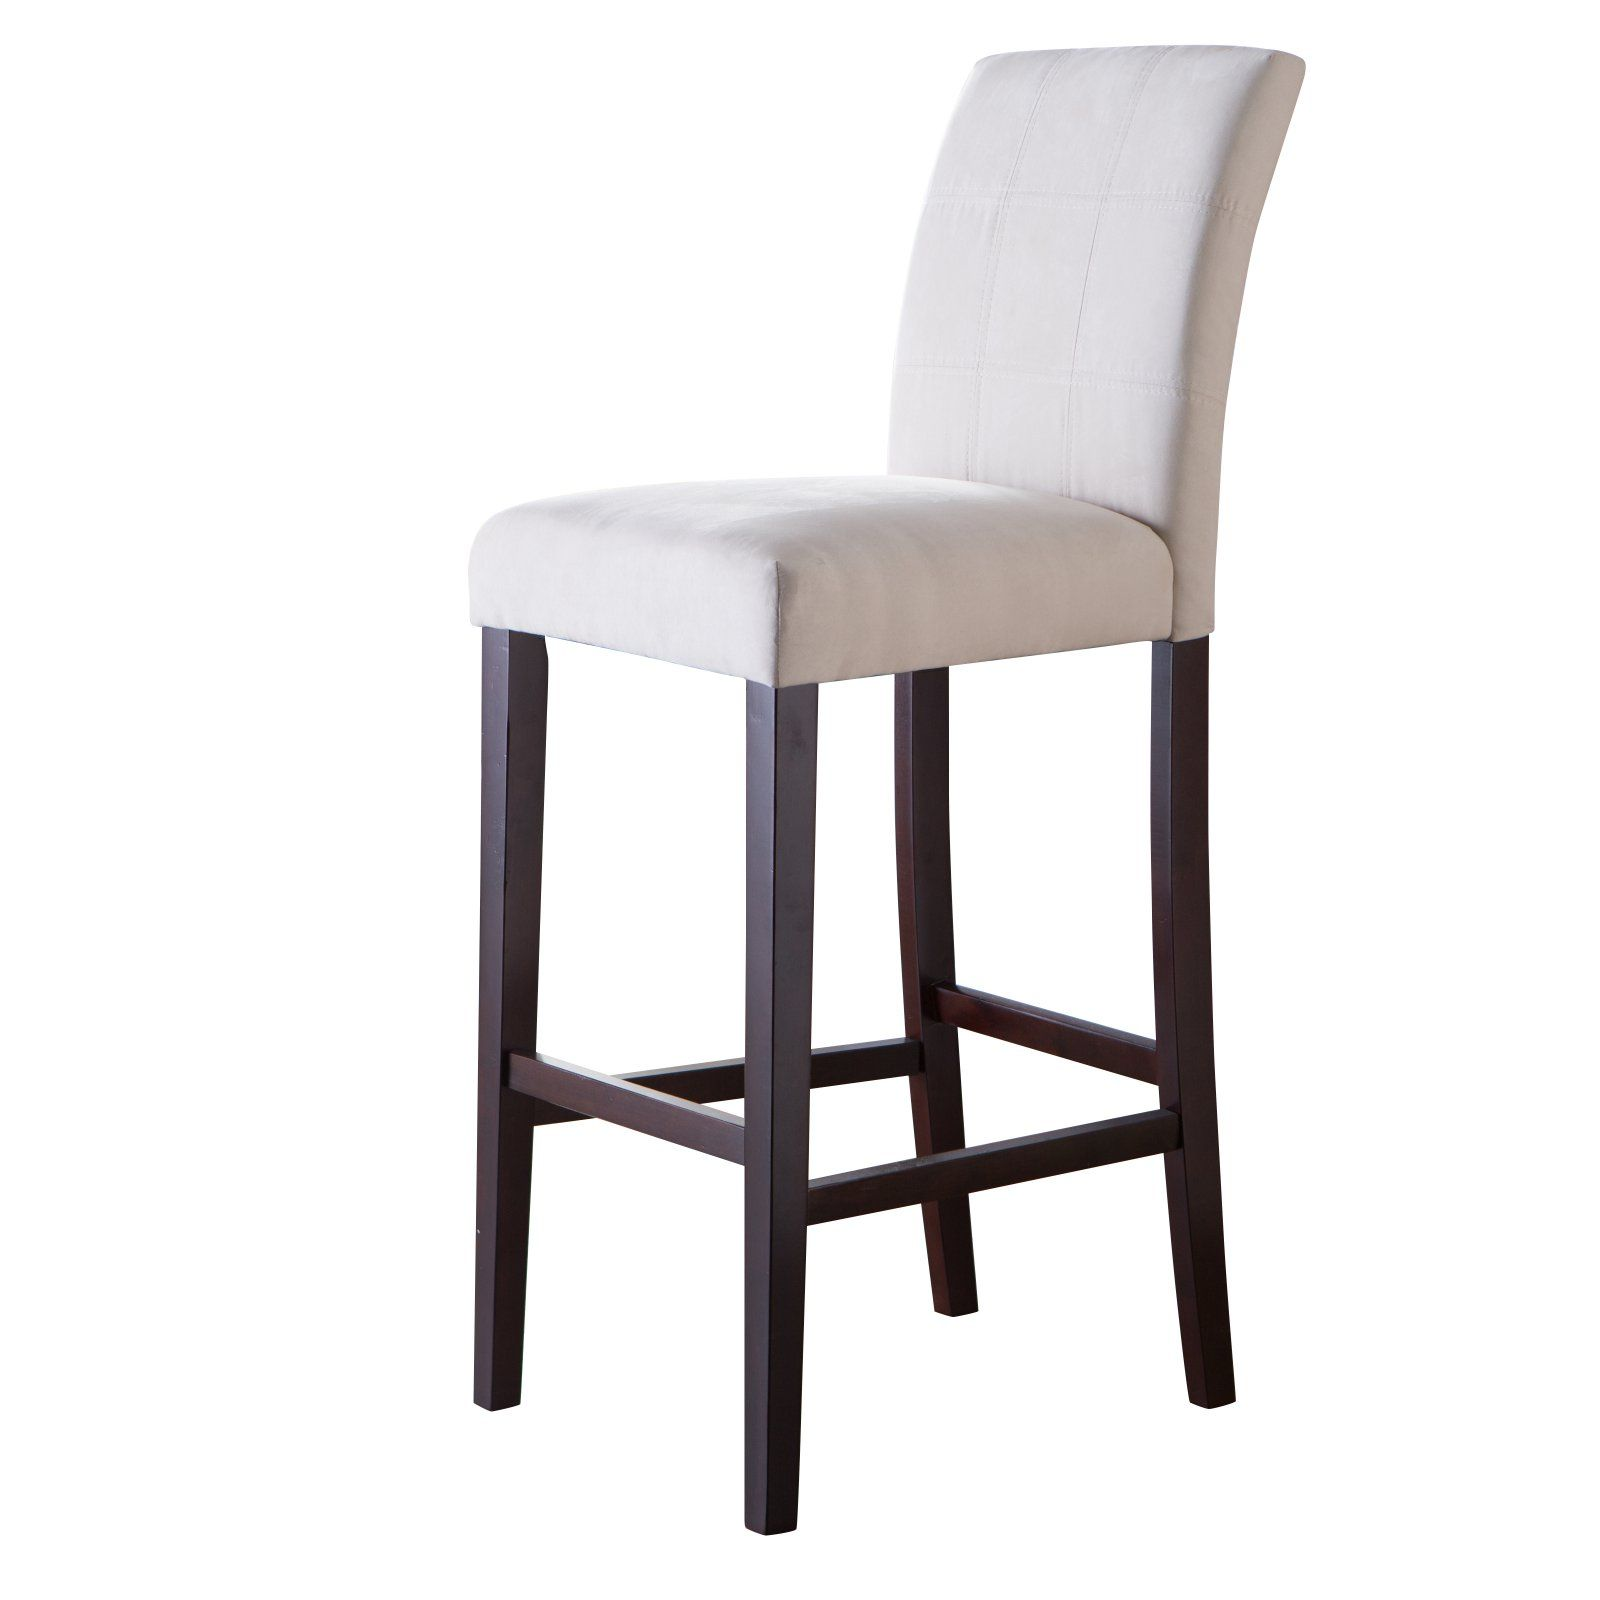 Pleasant Finley Home Palazzo Extra Tall Bar Stool Set Of 2 Light Caraccident5 Cool Chair Designs And Ideas Caraccident5Info